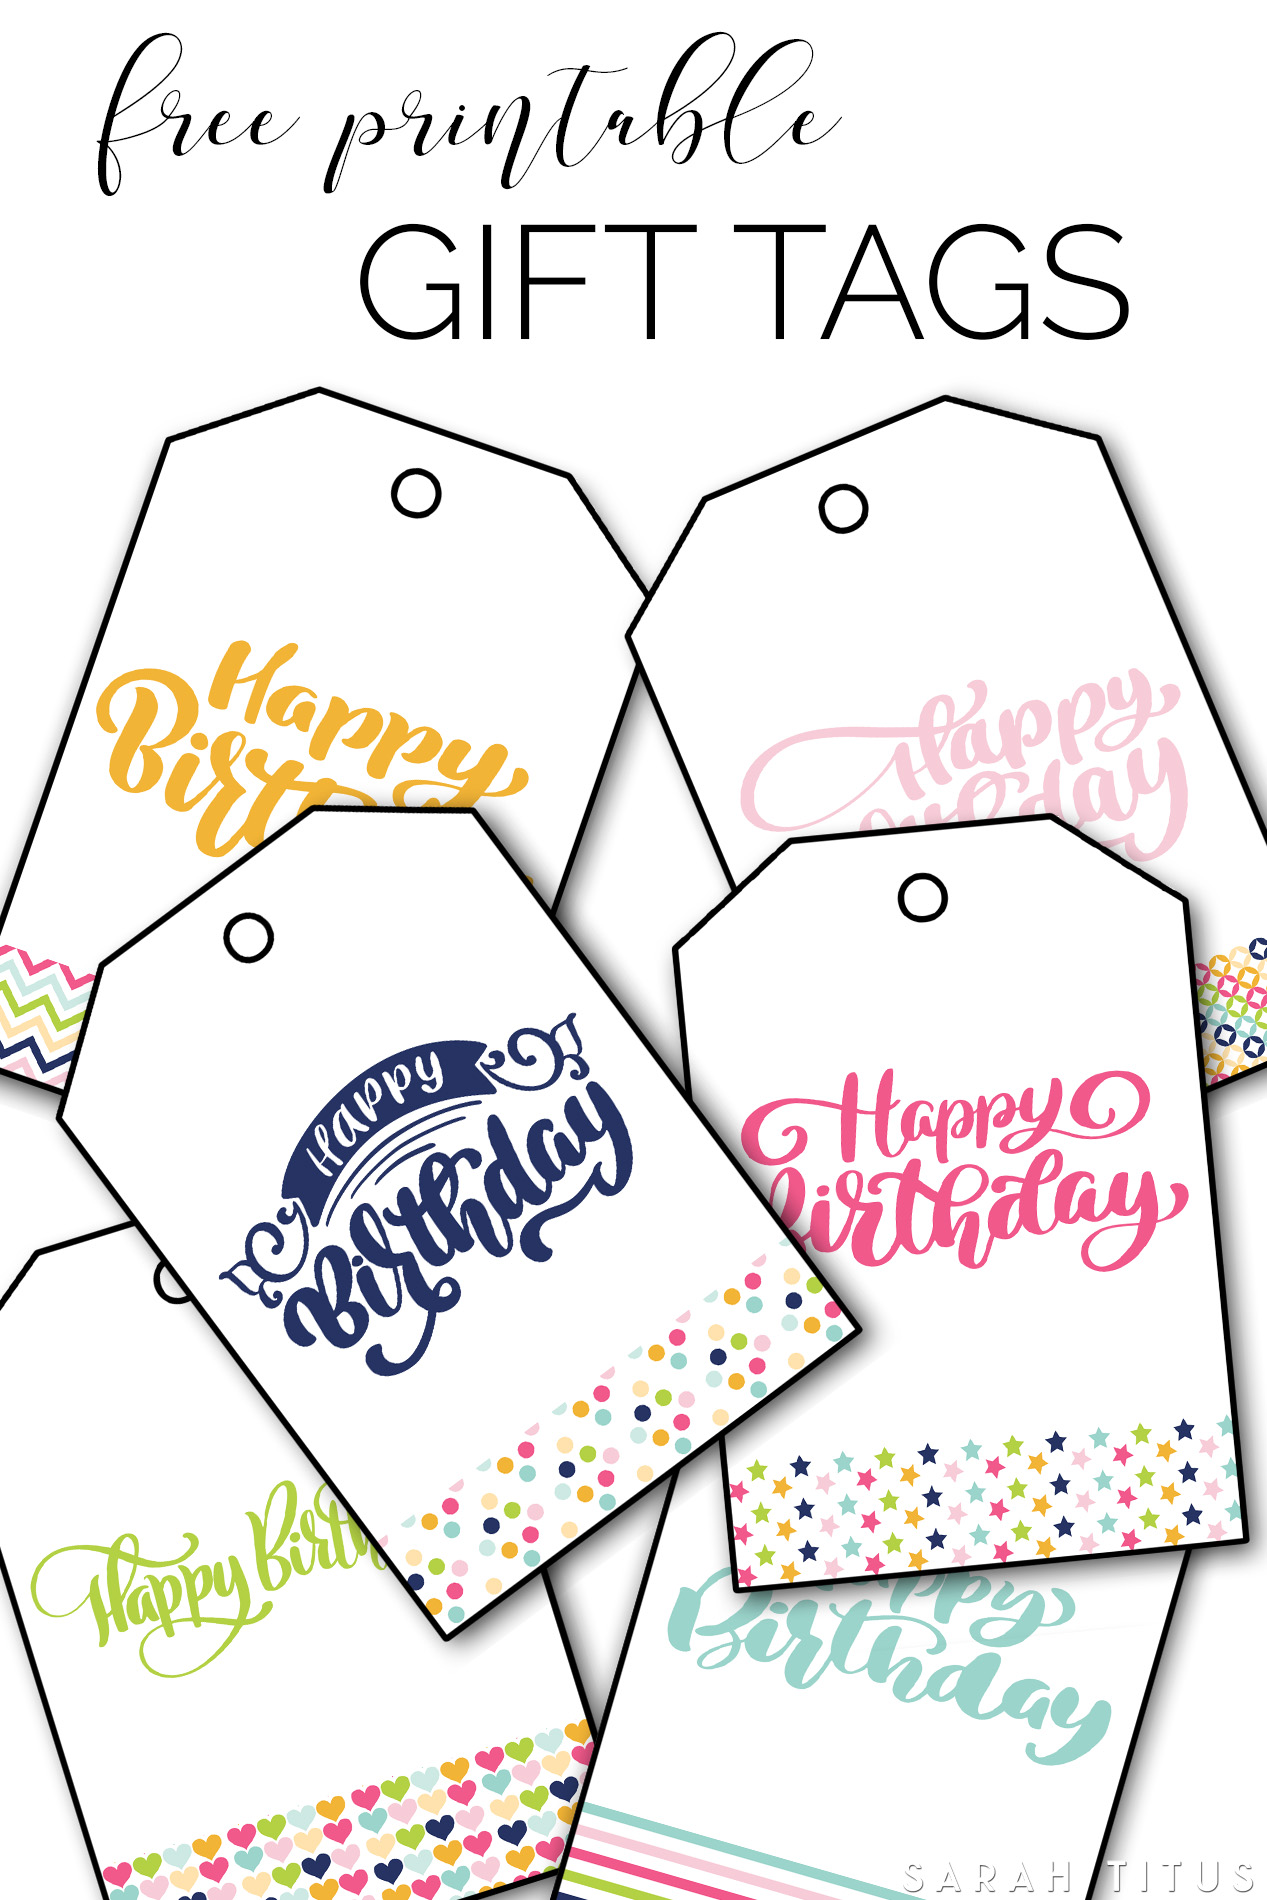 photograph about Gift Tag Printable Free identify No cost Printable Satisfied Birthday Reward Tags - Sarah Titus